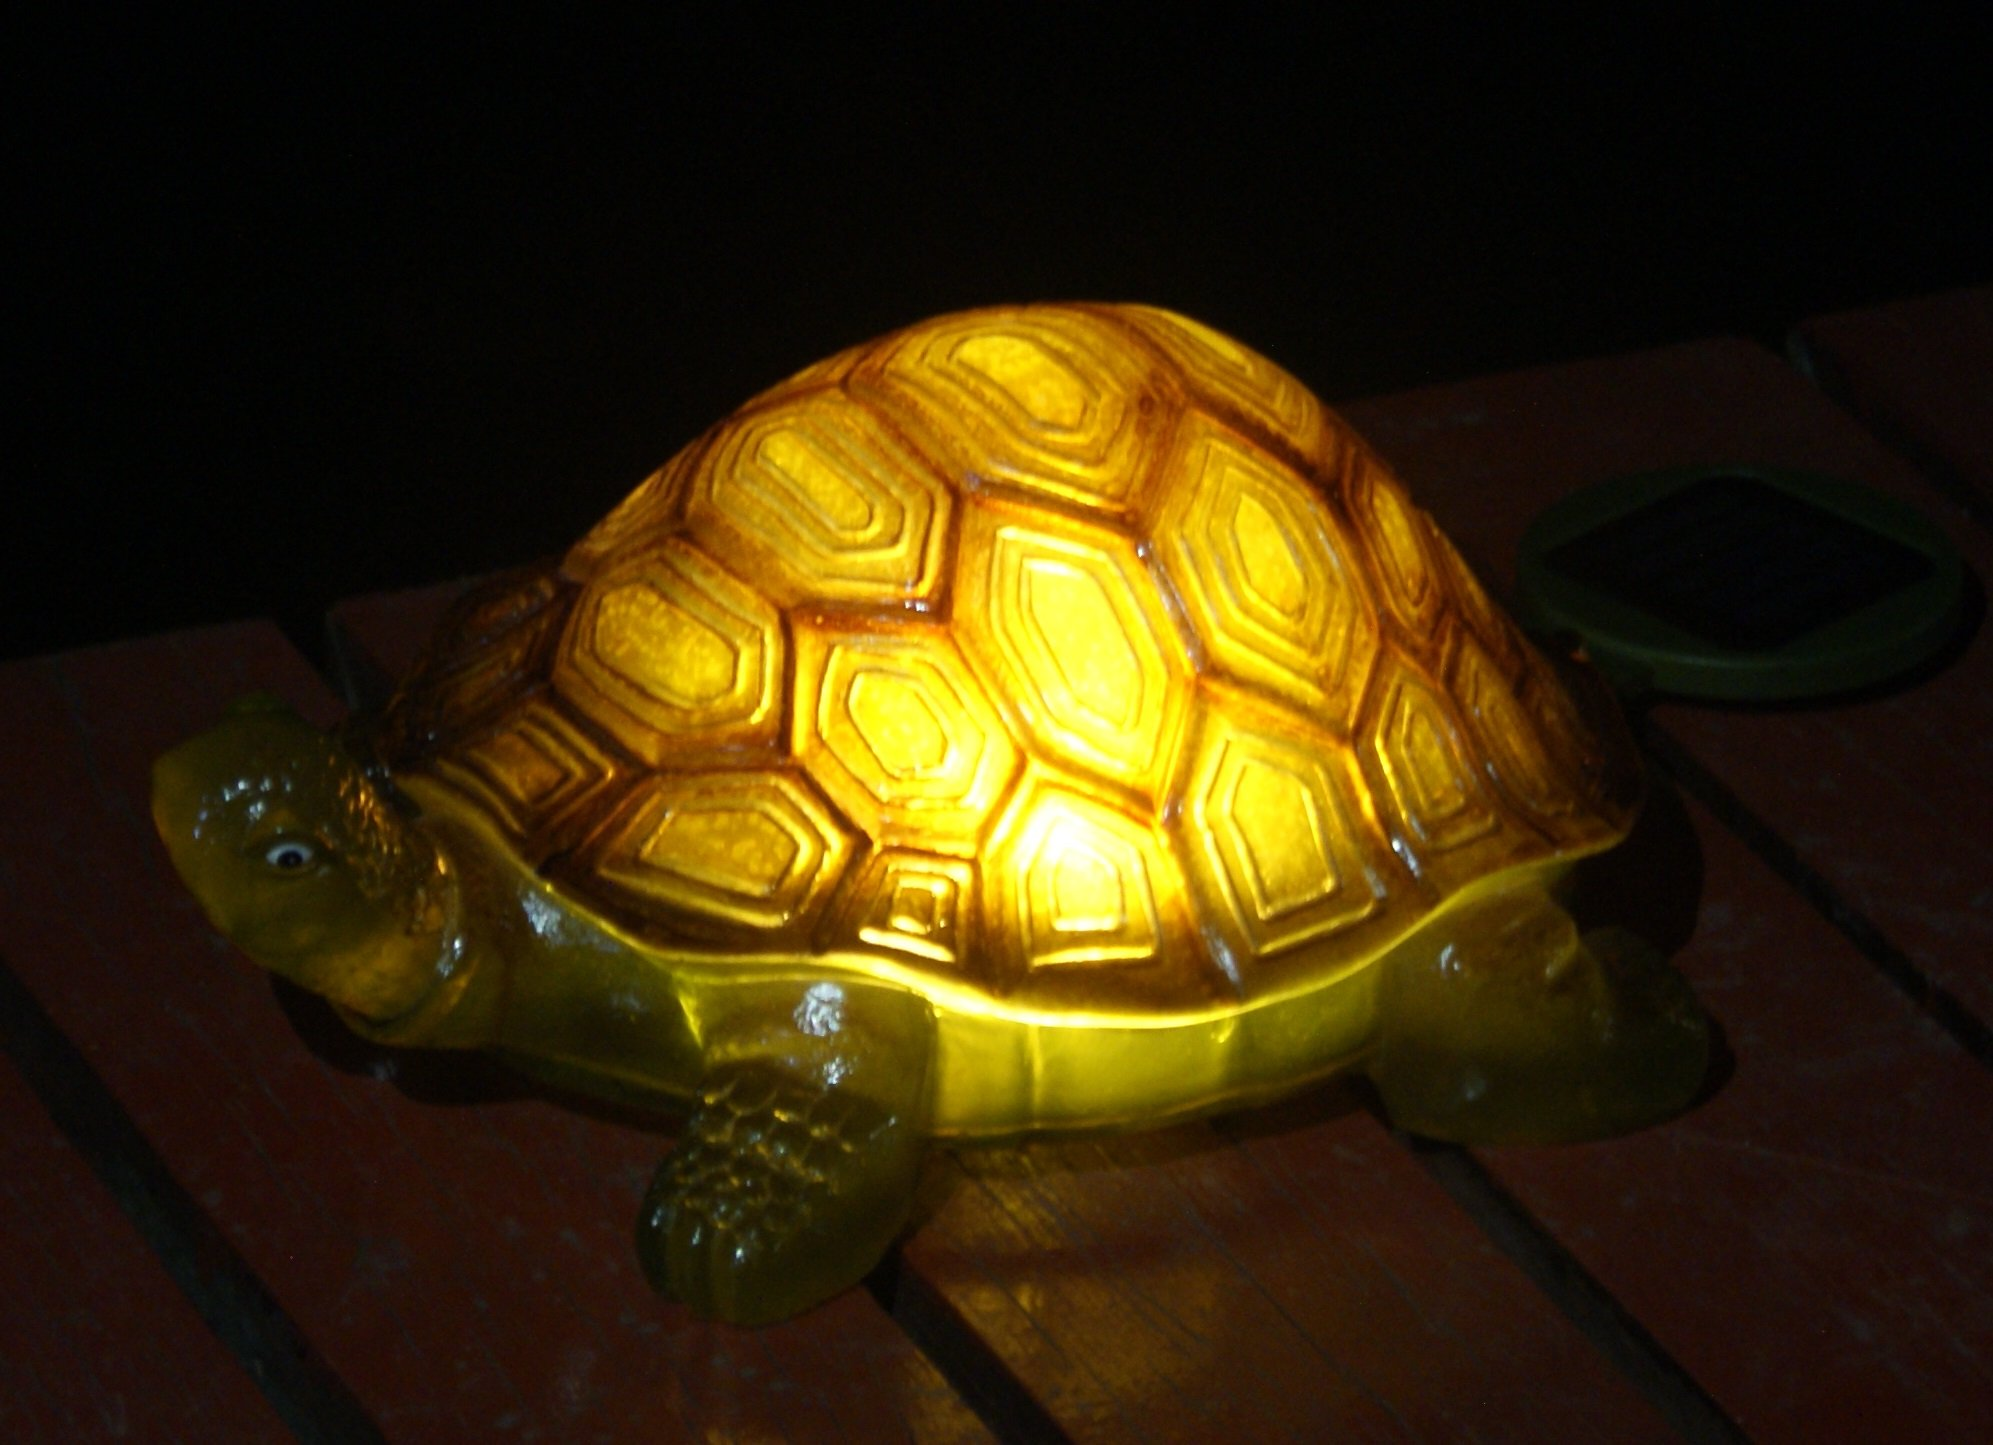 TIAAN 157808 Solar Powered LED Light Garden Decor,Turtle with LED Glowing Shell